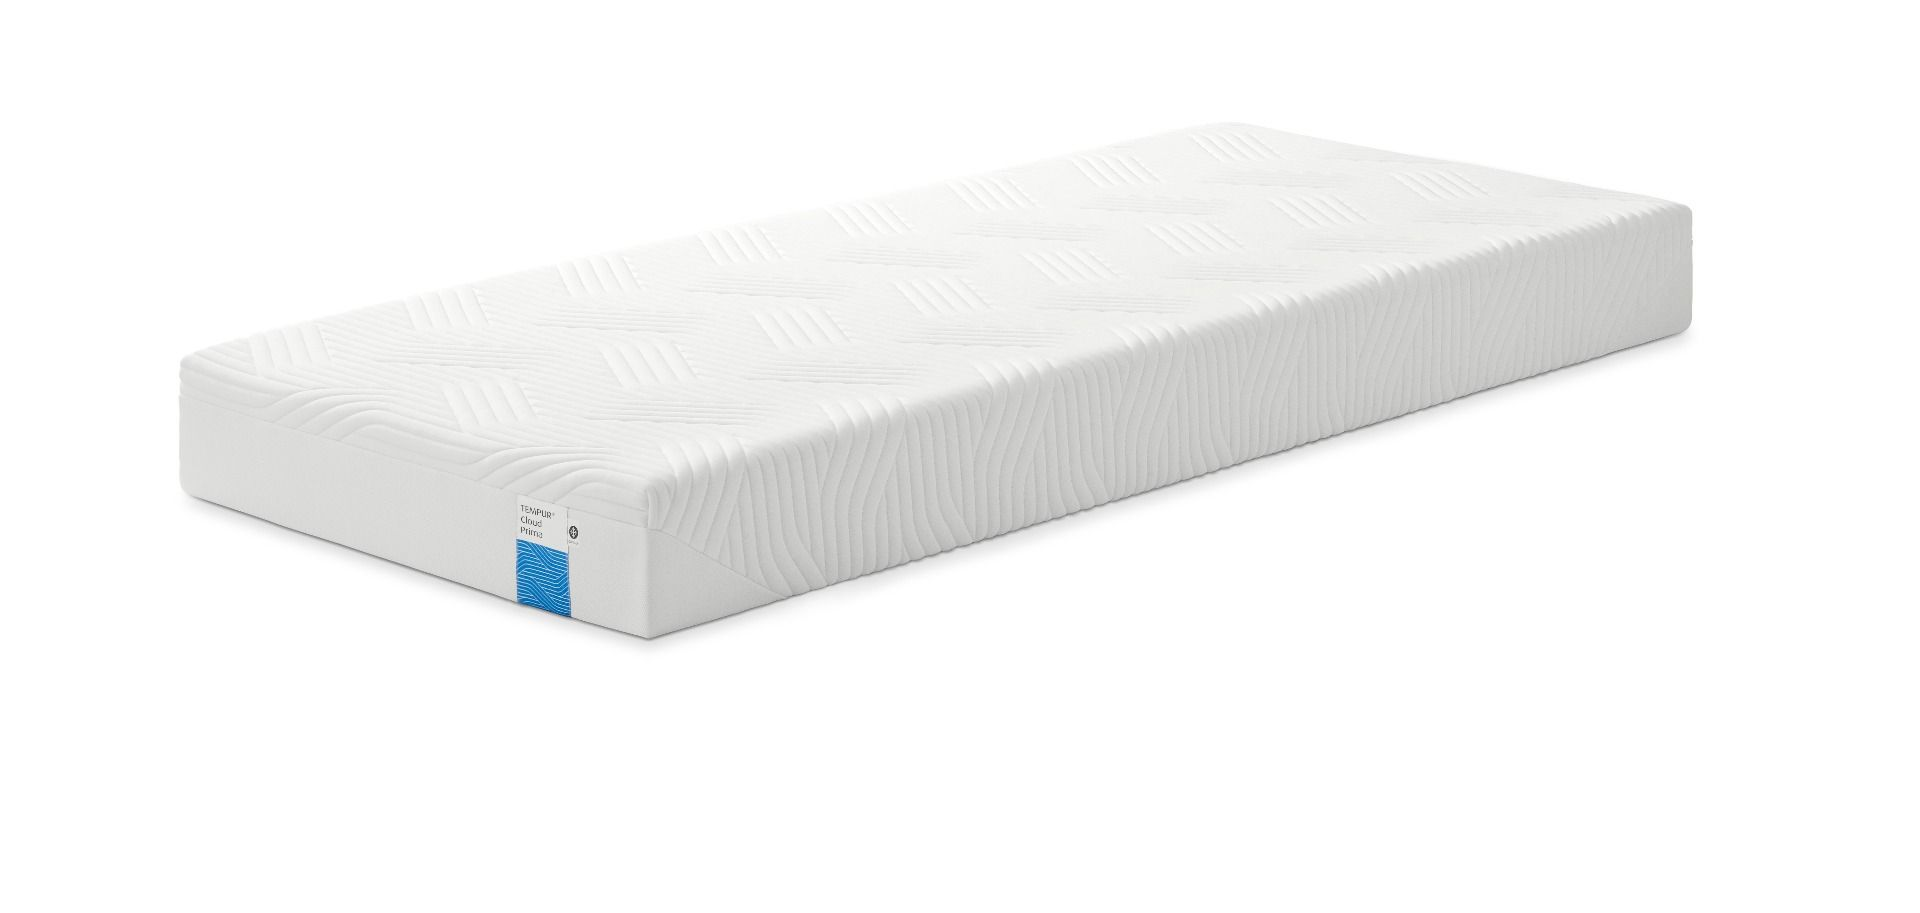 TEMPUR Cloud Prima matras met CoolTouch